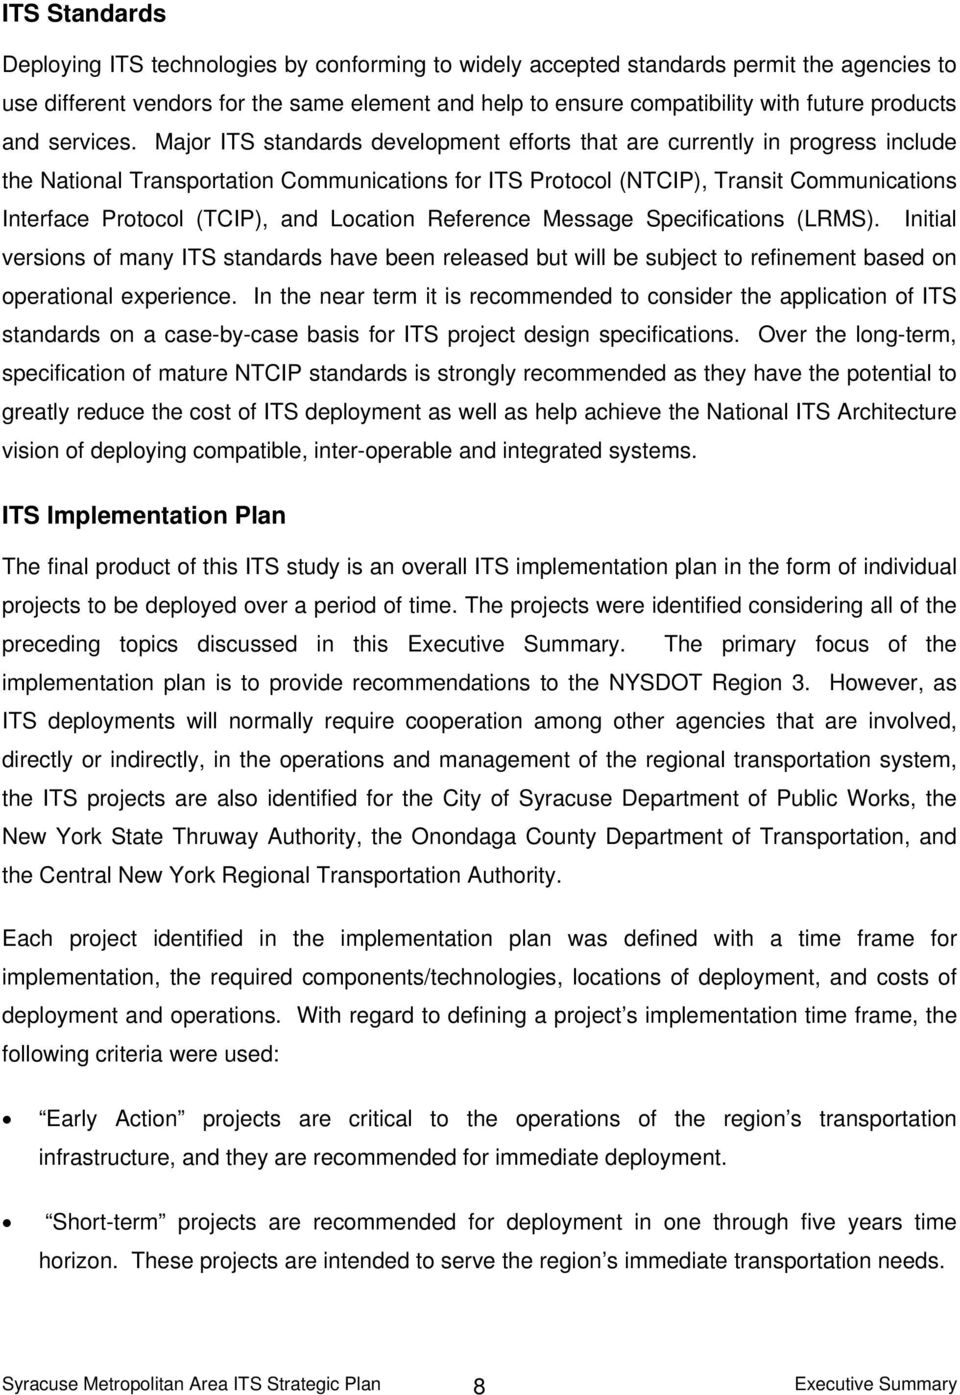 Major ITS standards development efforts that are currently in progress include the National Transportation Communications for ITS Protocol (NTCIP), Transit Communications Interface Protocol (TCIP),